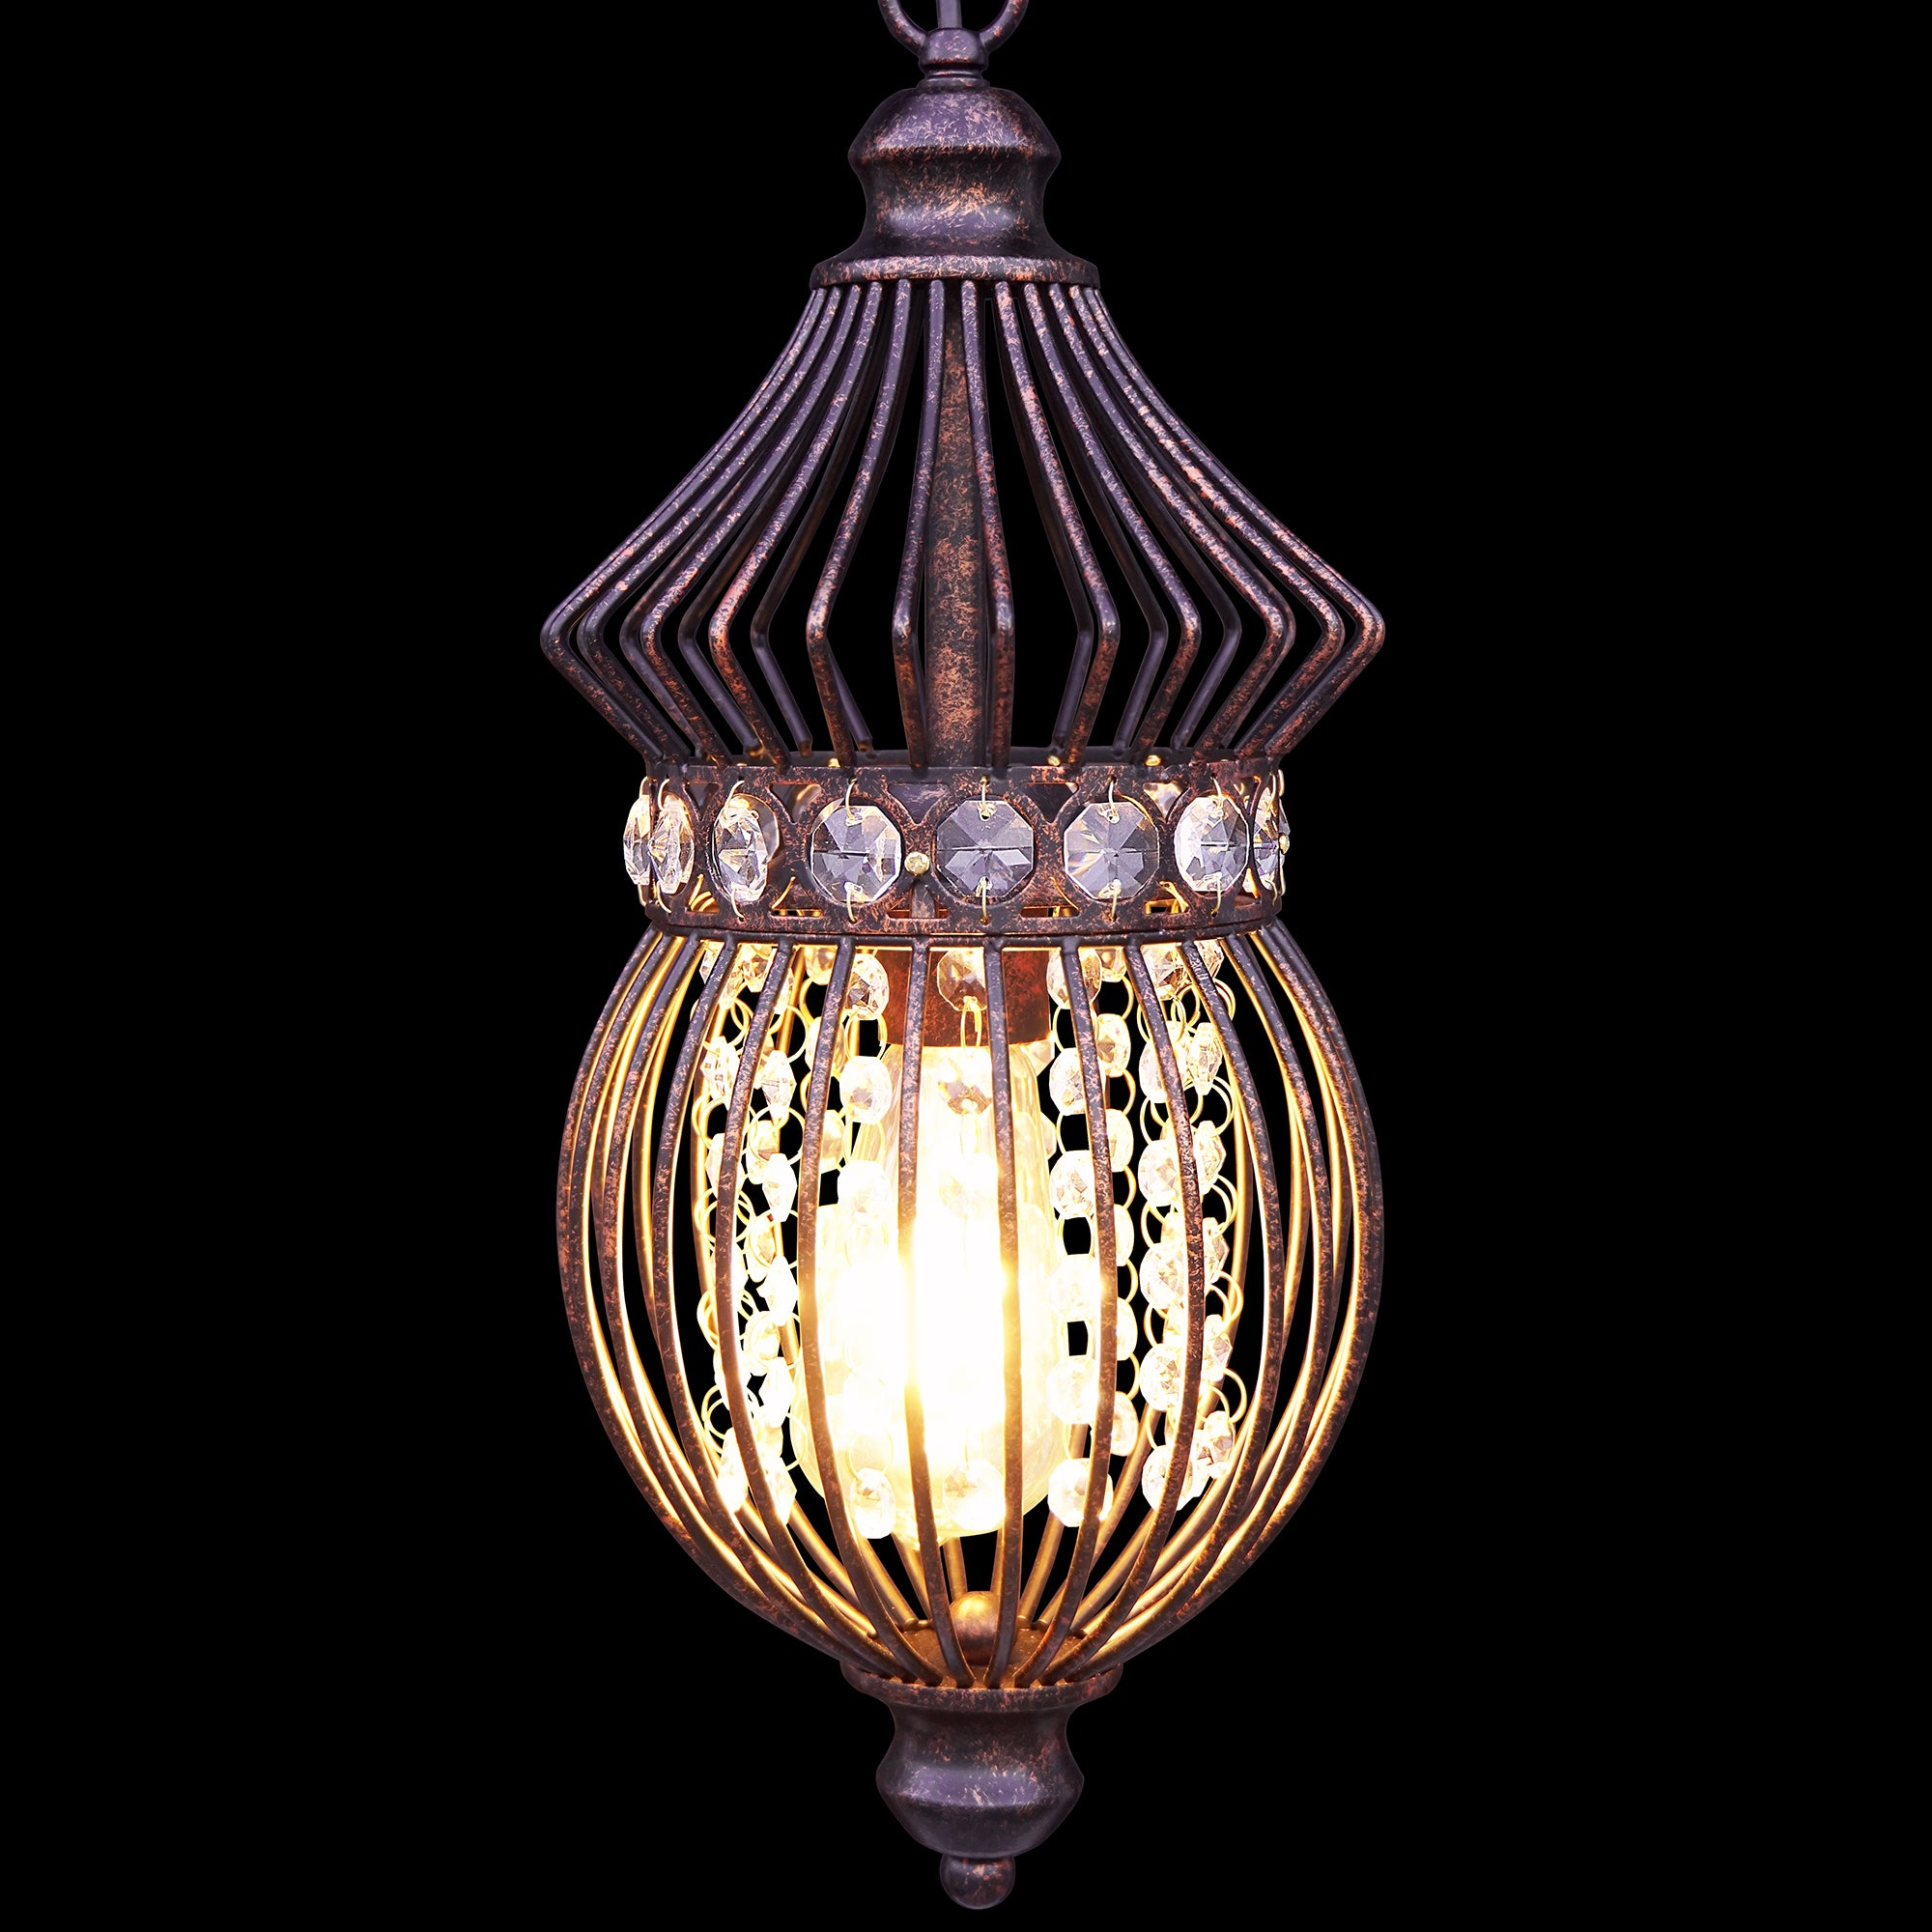 a shades source is lamps the and by elegant lamp fil looks with forestier this birdcage de light like fer beautiful an called pendant birdcagelike collection paris